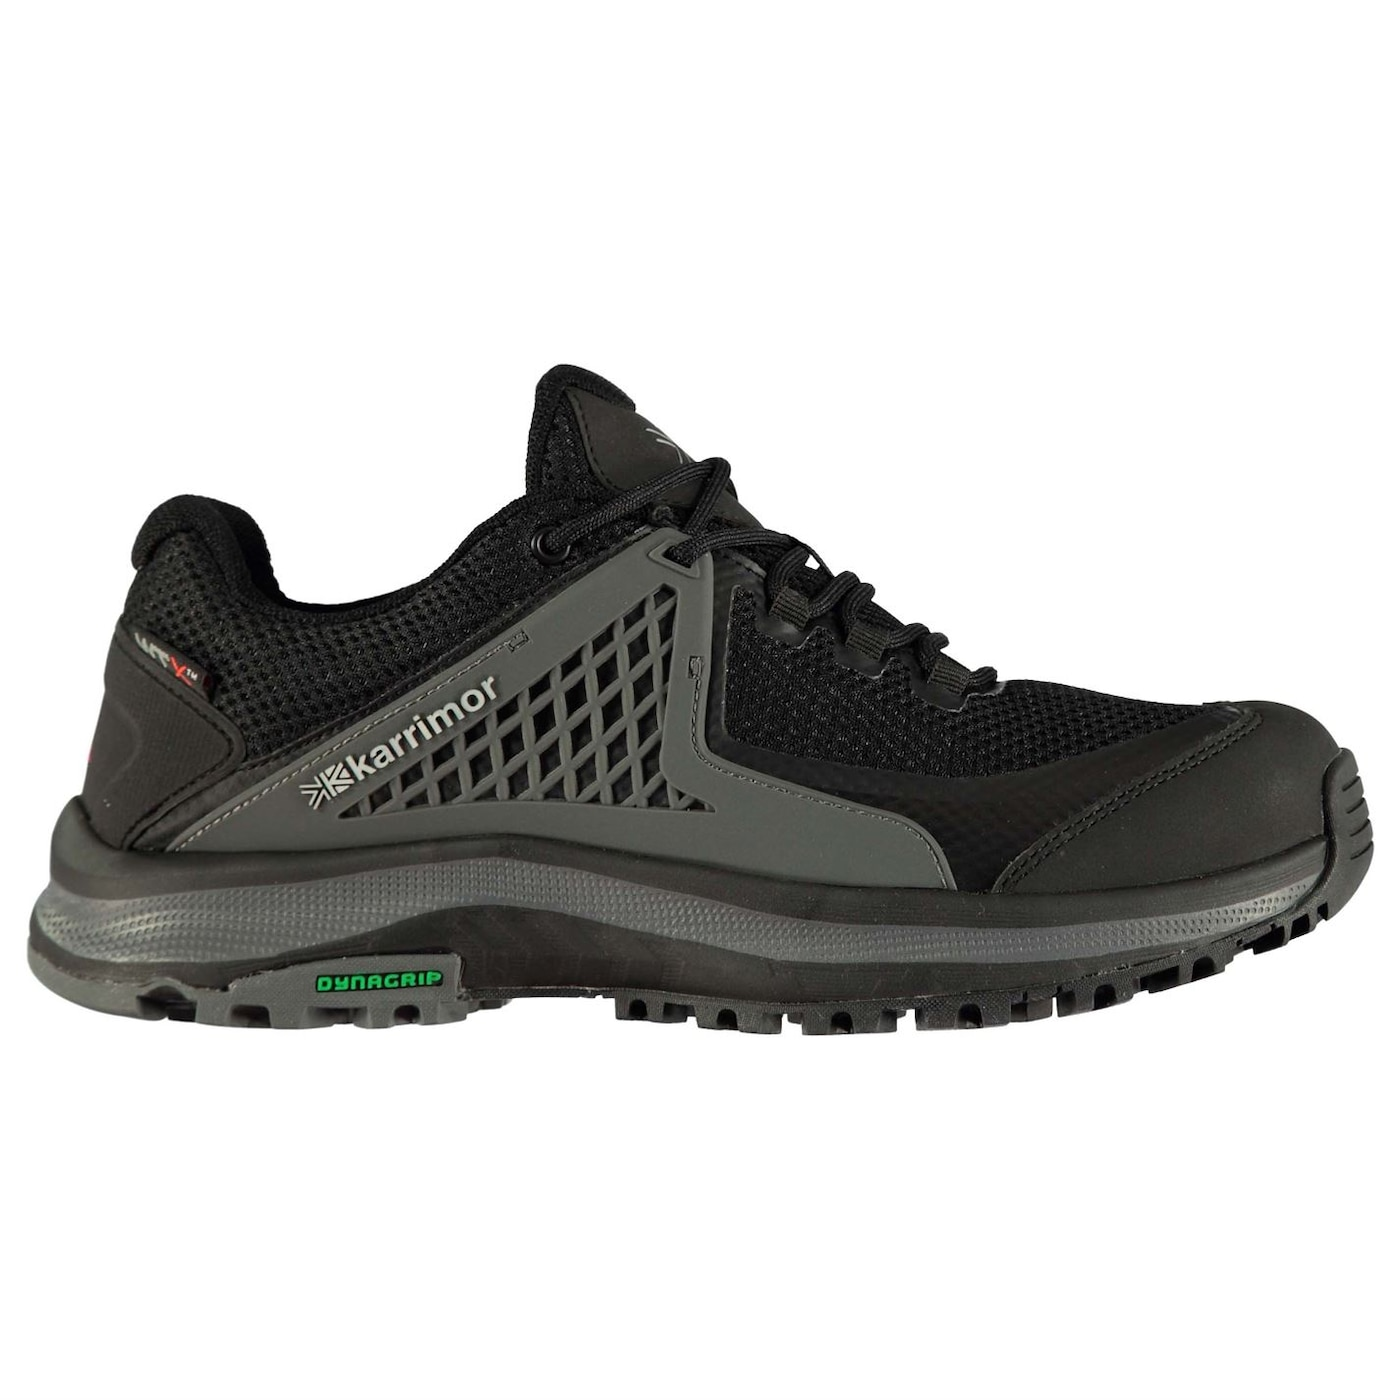 Karrimor Stanedge Walking Shoes Mens